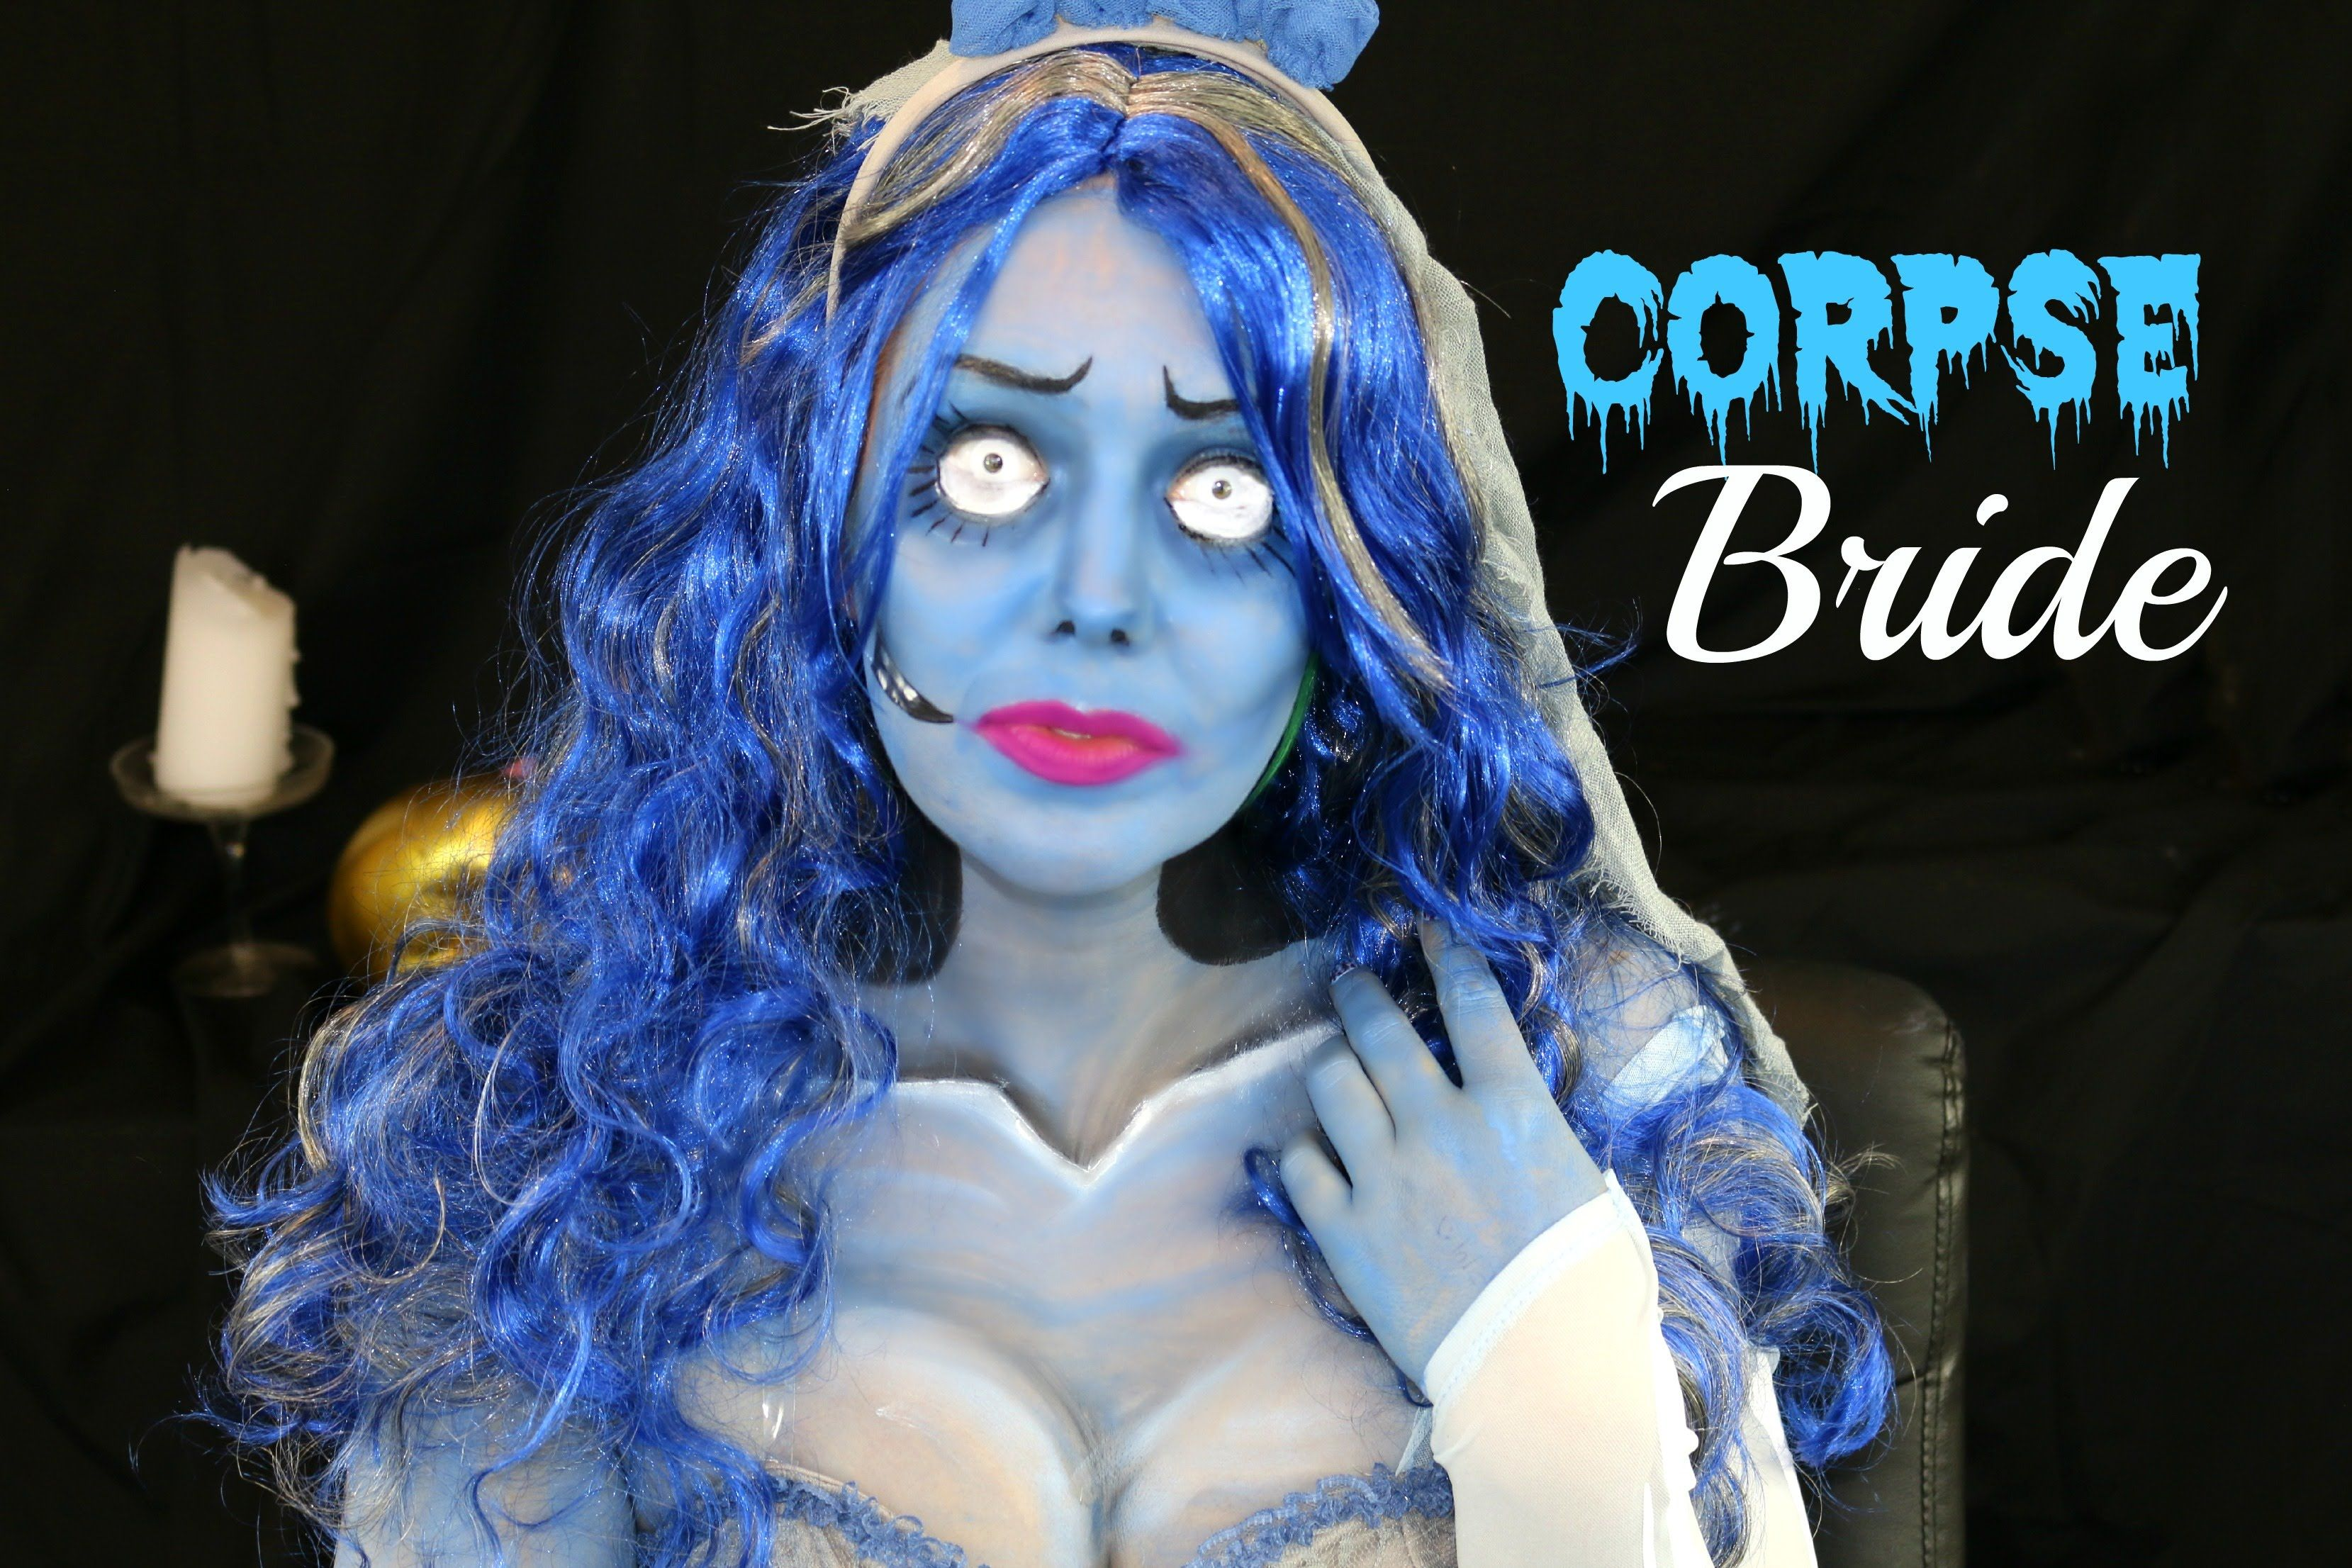 Corpse bride halloween or cosplay makeup idea by jade madden love